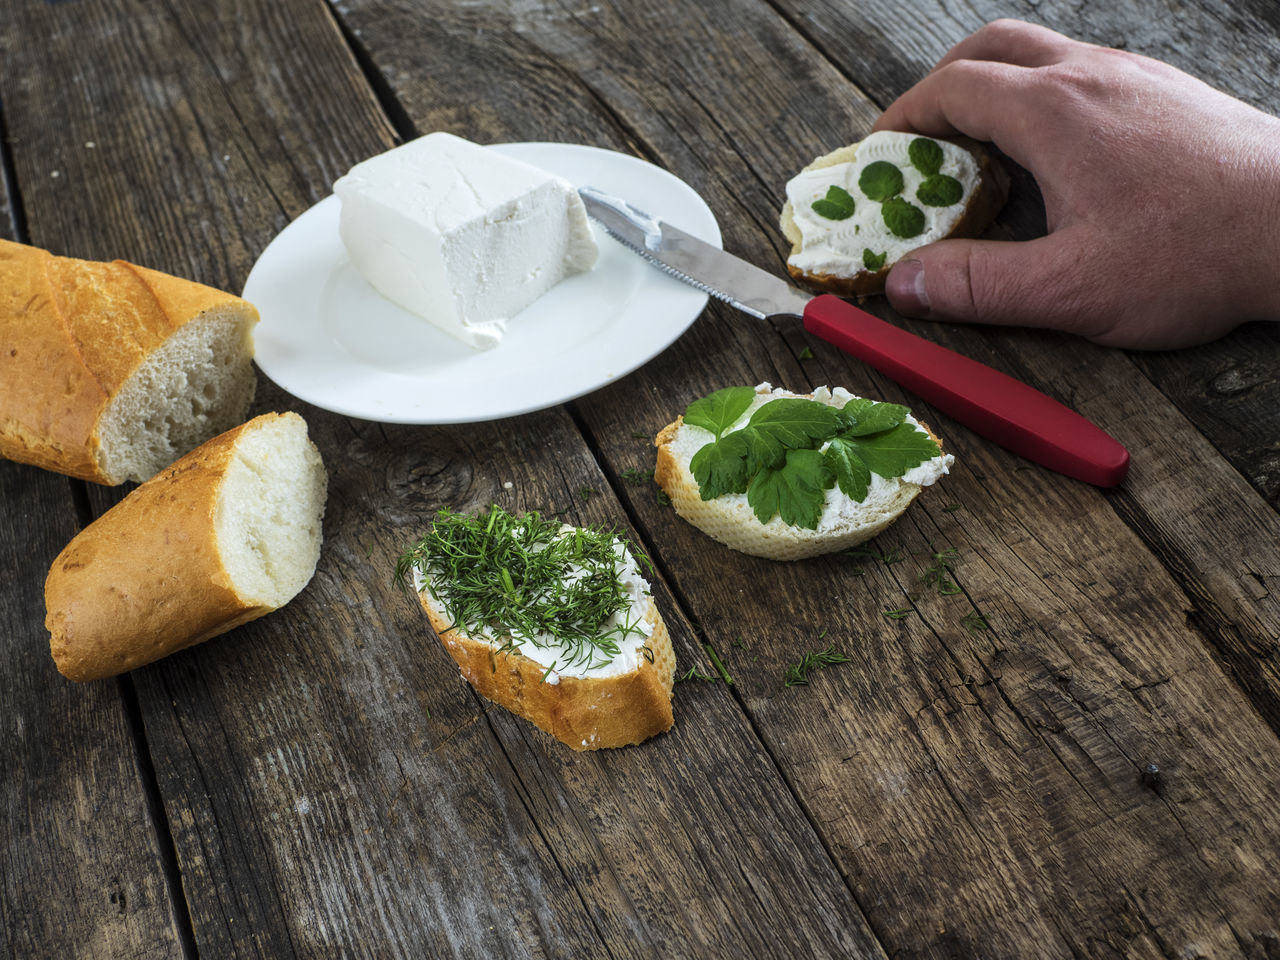 men's hand take bruschetta with feta cheese and chopped spicy herbs on an old wooden weathered table Adults Only Bread Bruschetta Cheese Chopped Close-up Feta Food Freshness Healthy Eating Healthy Lifestyle Herbs Human Body Part Human Hand Men Men's Old One Person One Woman Only Only Women Spicy Sprinkling Table Weathered Wooden